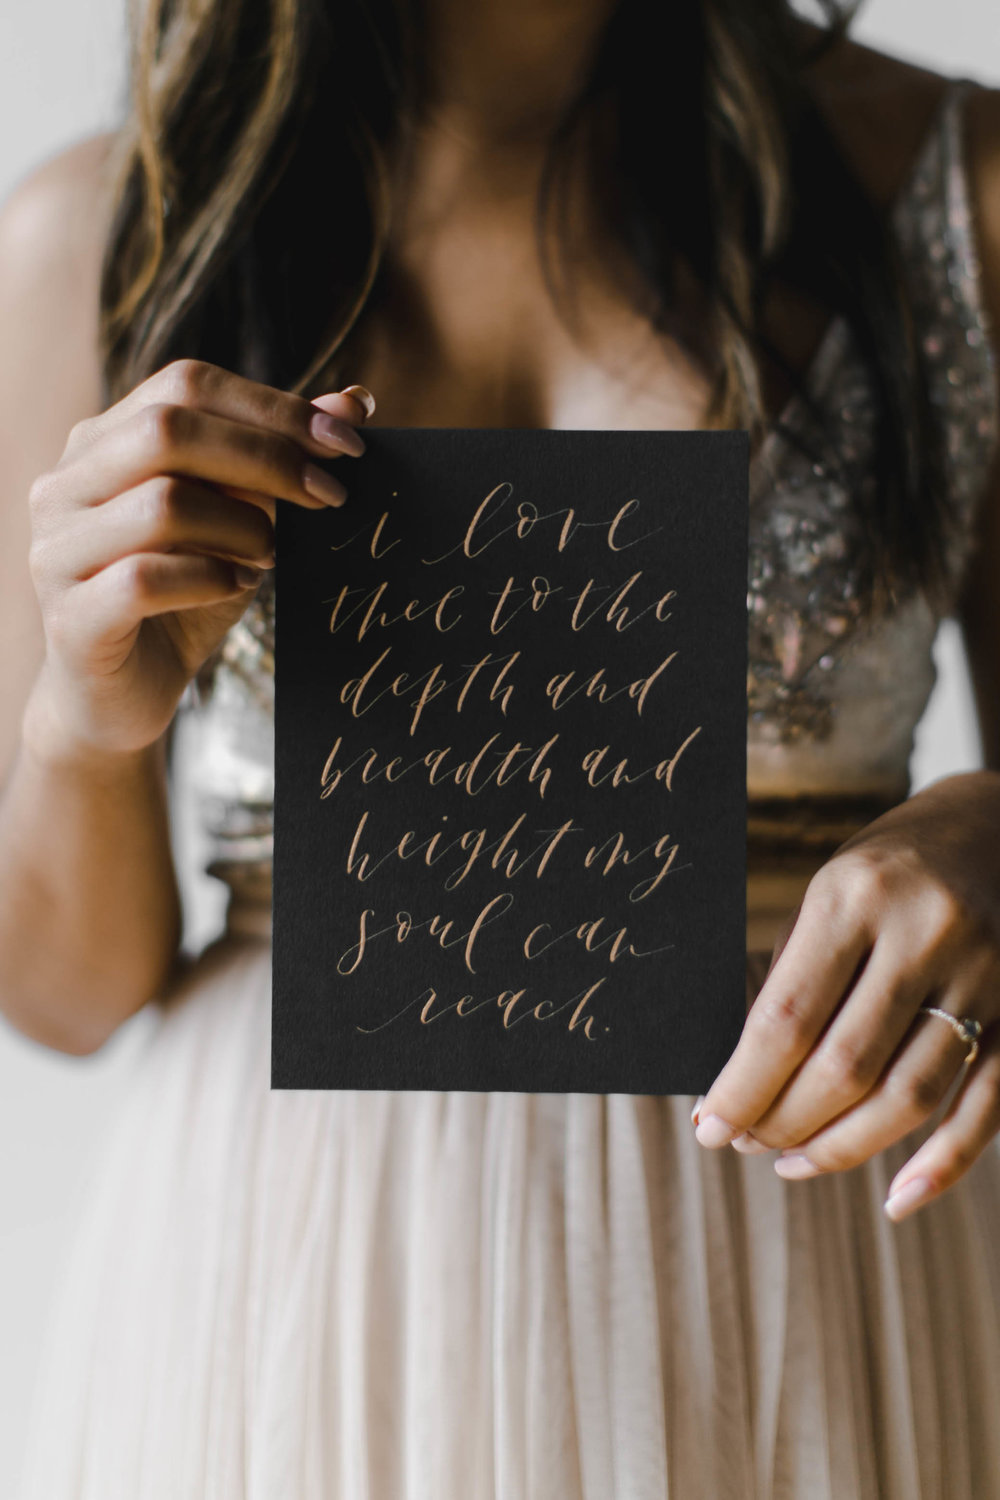 Photo by Melody Joy Co, Design & Calligraphy by Grace Niu Design, Jewelry by Lady Faye Jewelry